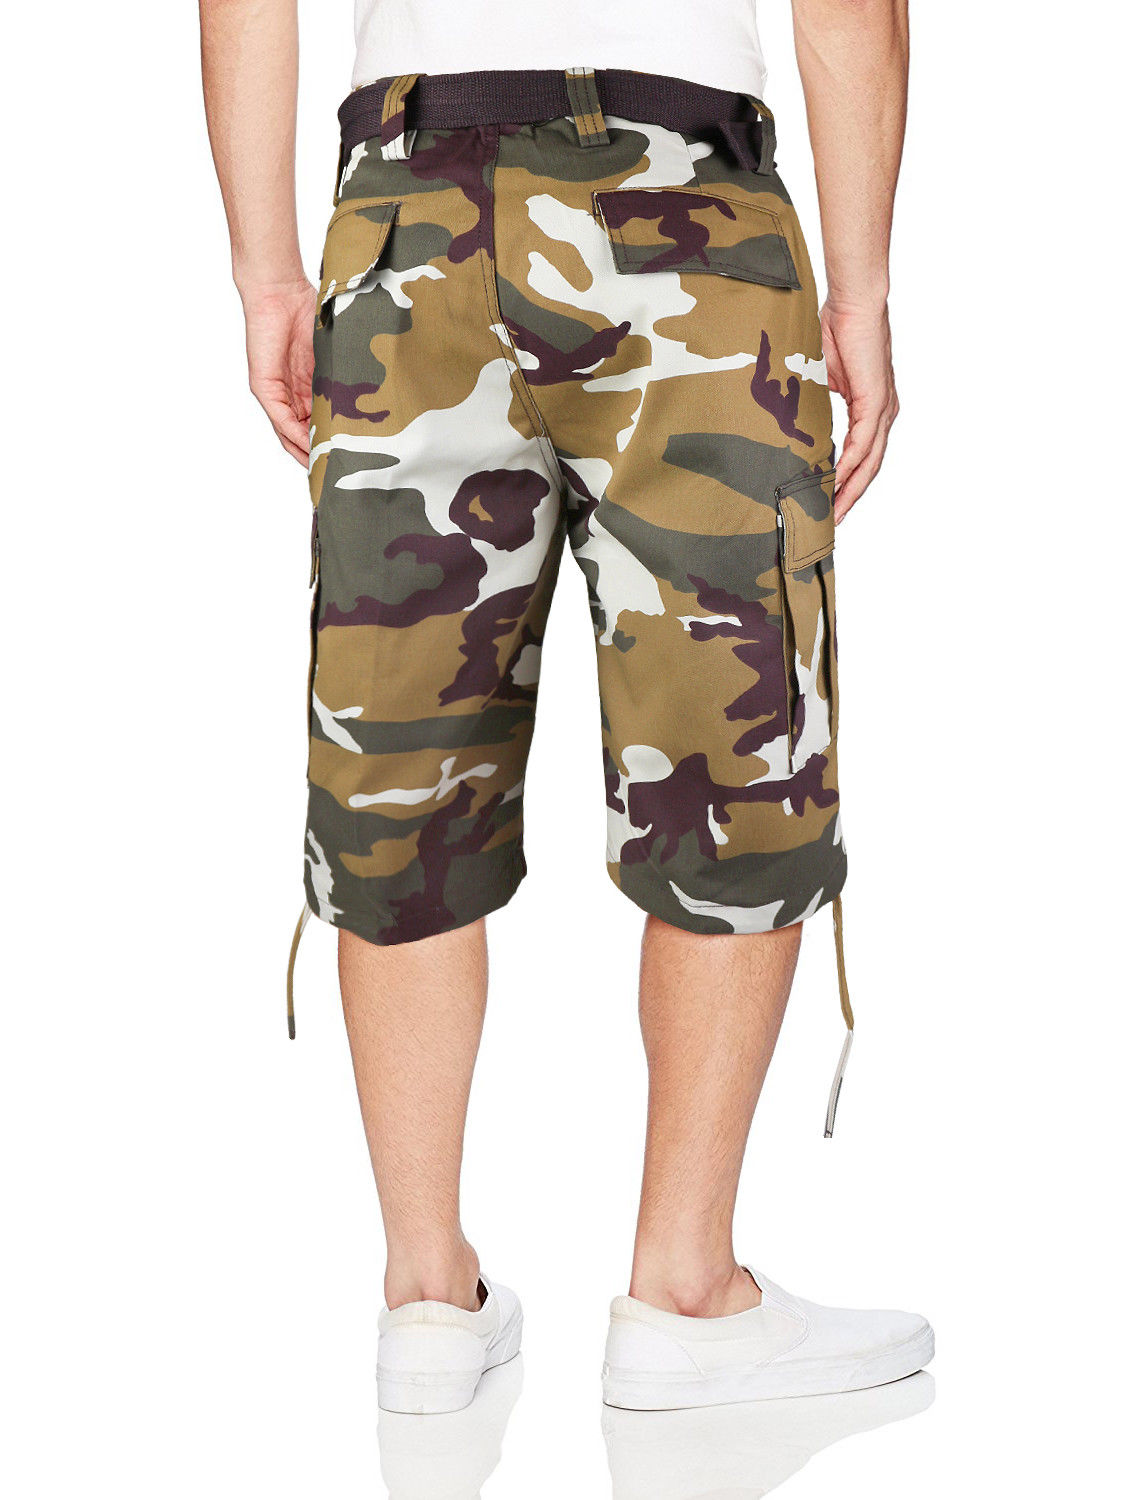 Men-039-s-Tactical-Military-Army-Camo-Camouflage-Slim-Fit-Cargo-Shorts-With-Belt thumbnail 29